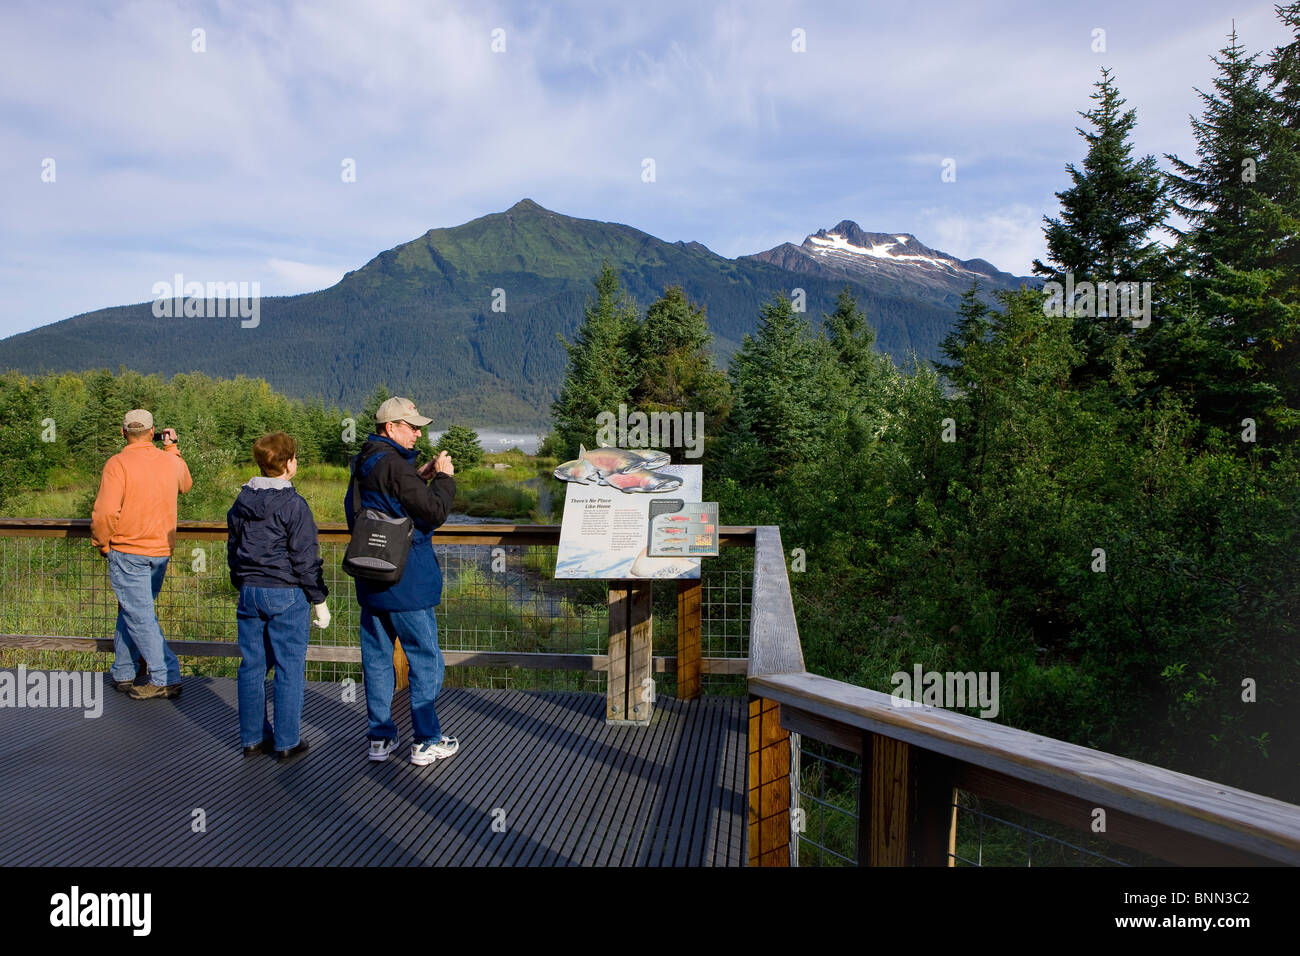 Visitors view a display explaining the life cycle of salmon that return to spawn in Steep Creek, Mendenhall Lake, - Stock Image